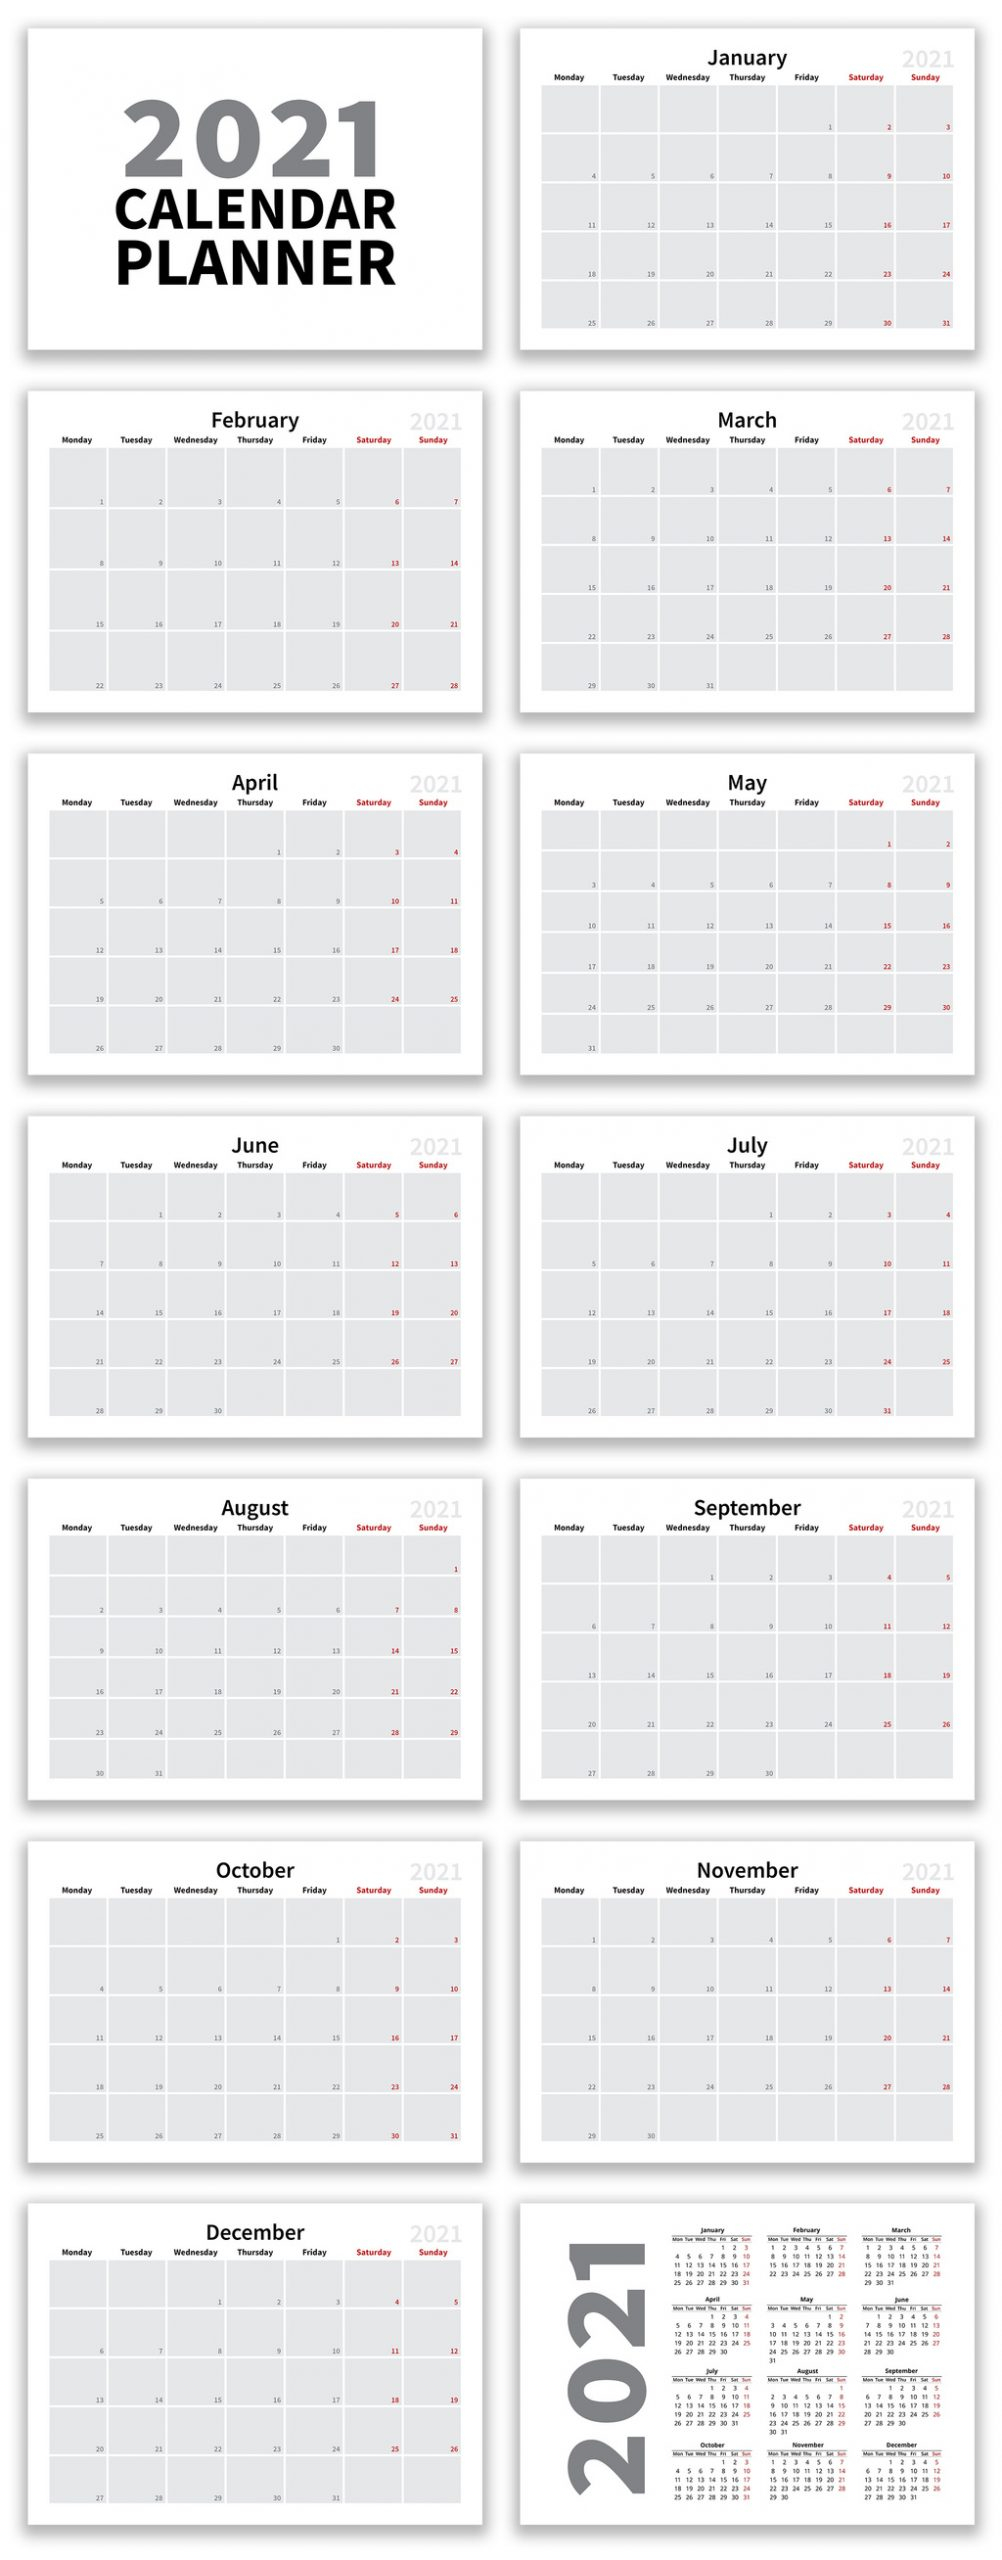 Calendar 2021 Template Collection Update V2 More Packs